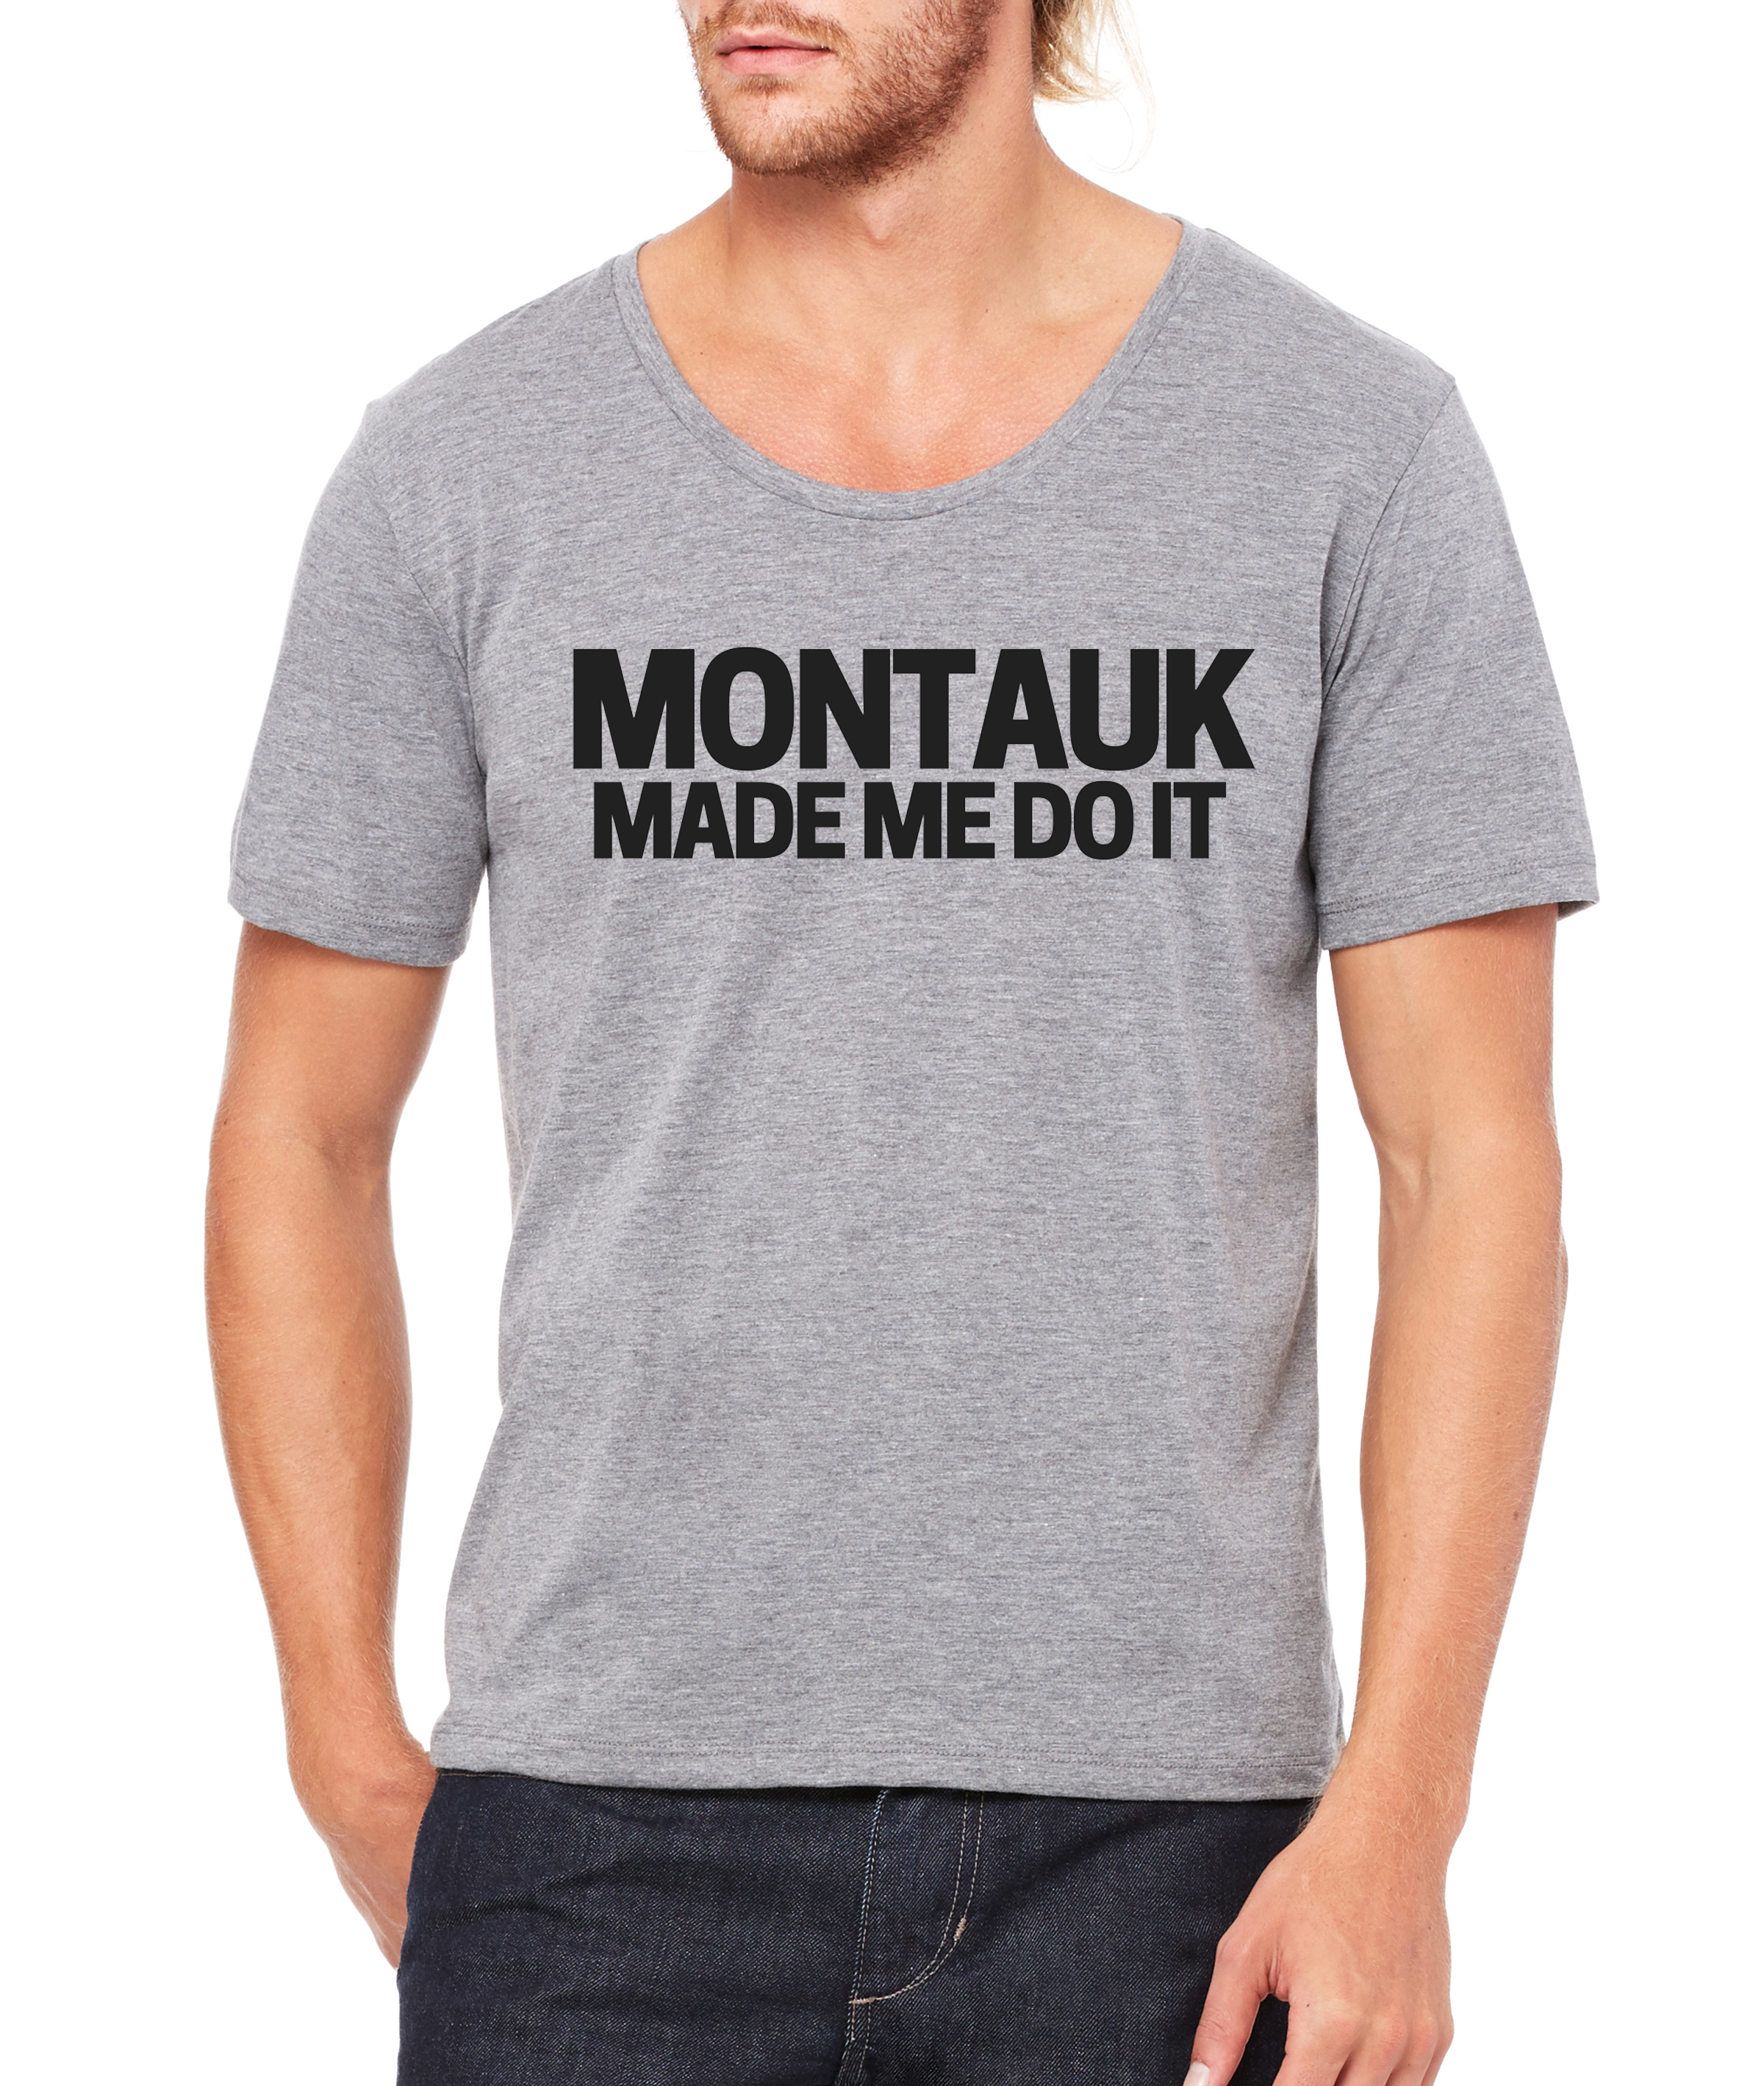 Montauk Made Me Do it Tee